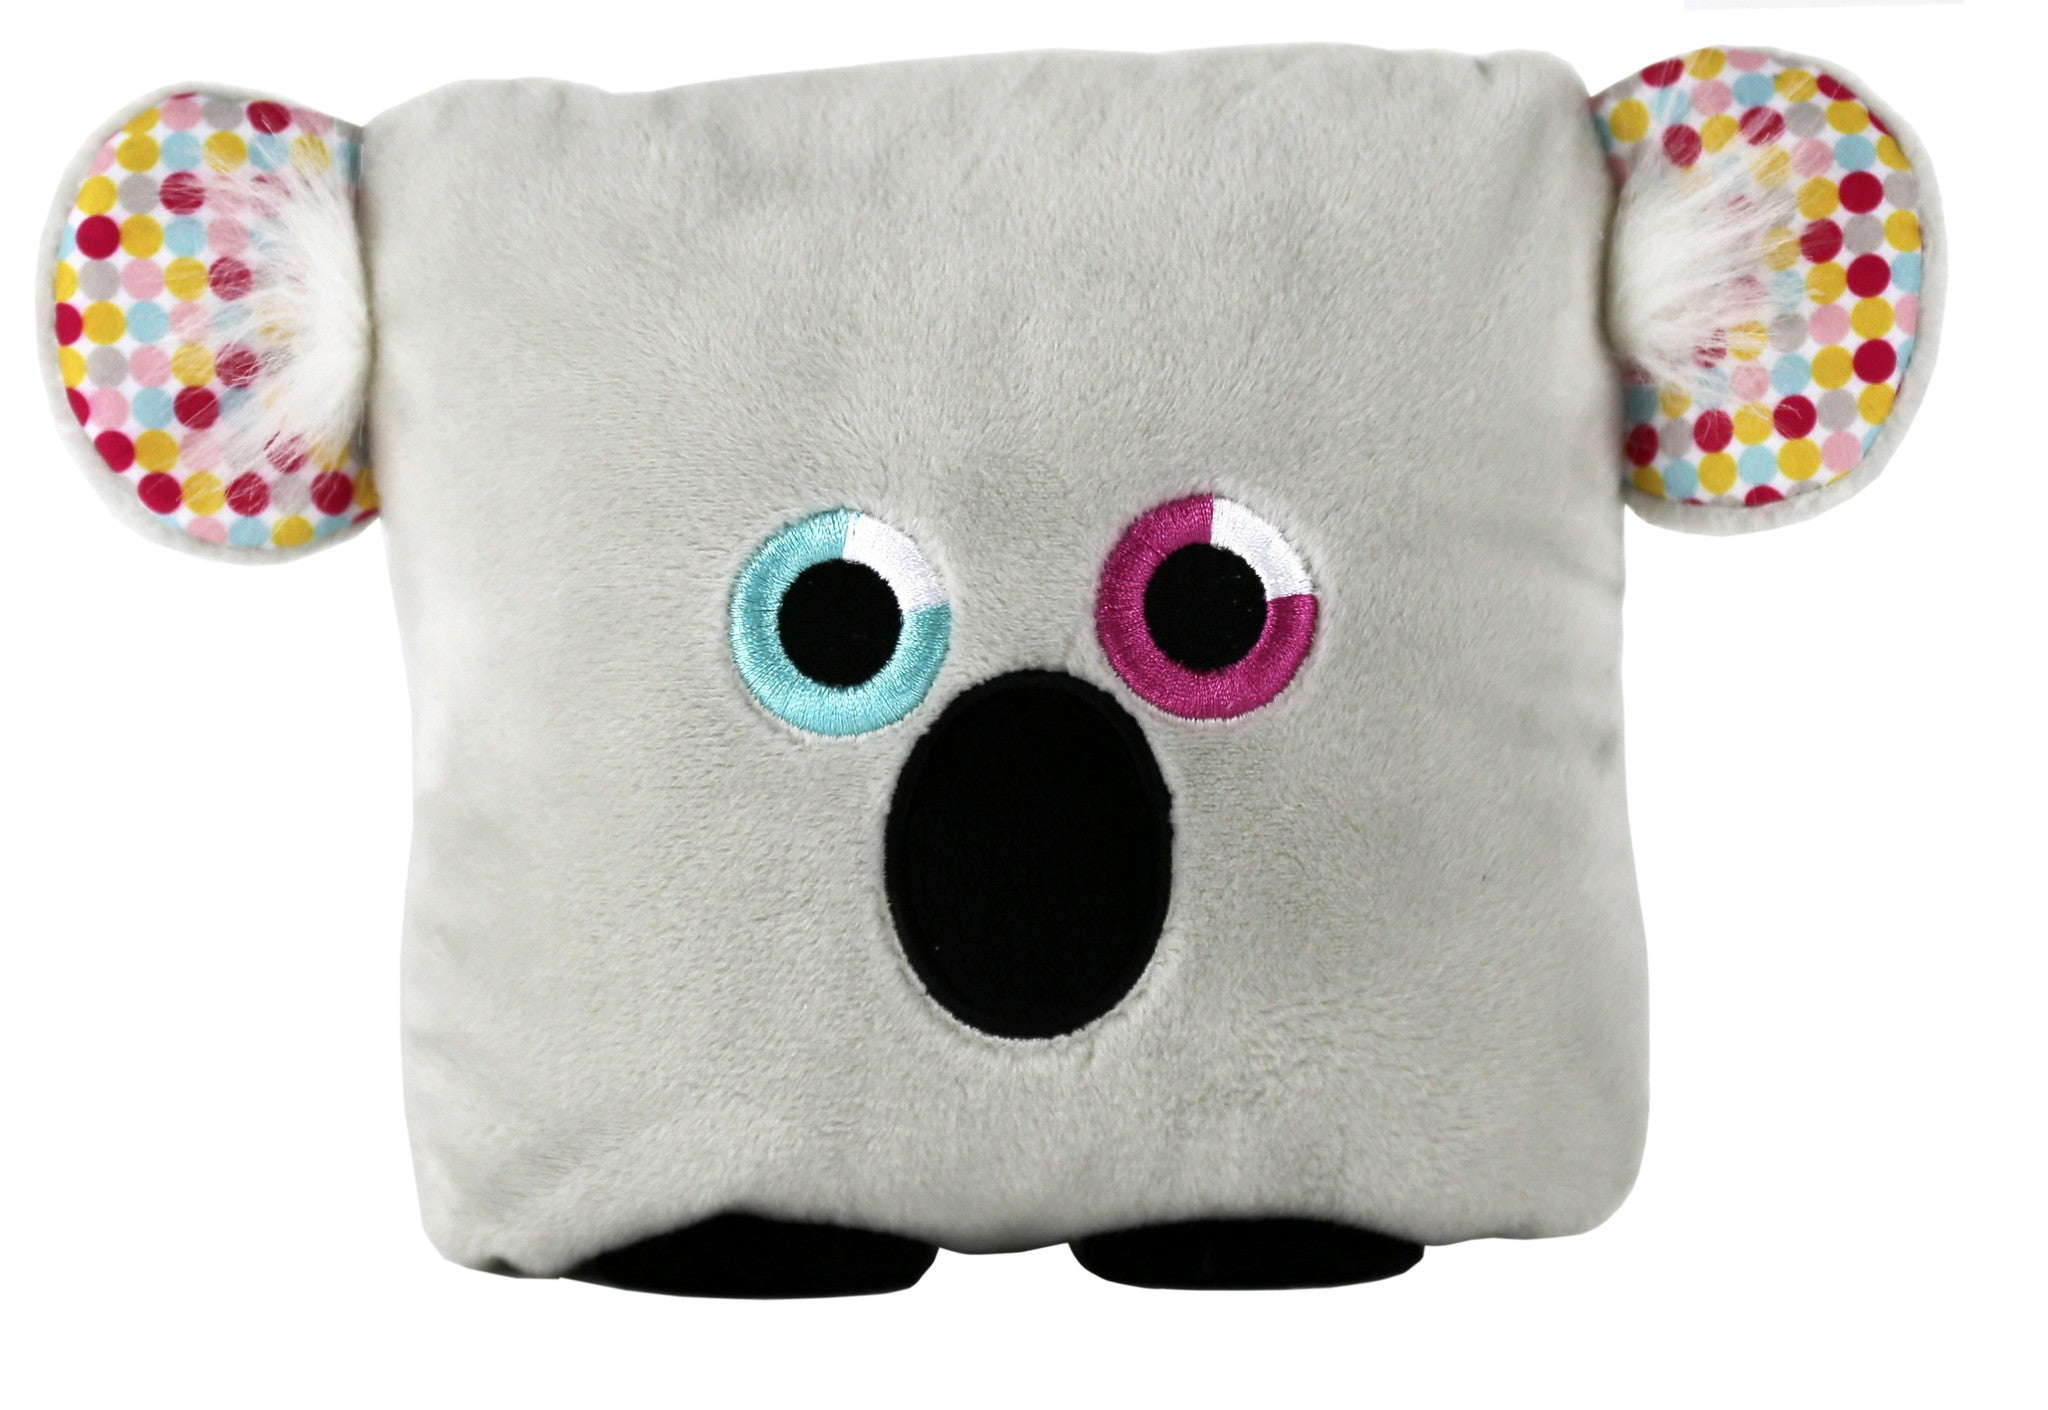 Plush toy koala bear stuffed animal with a useful back pocket